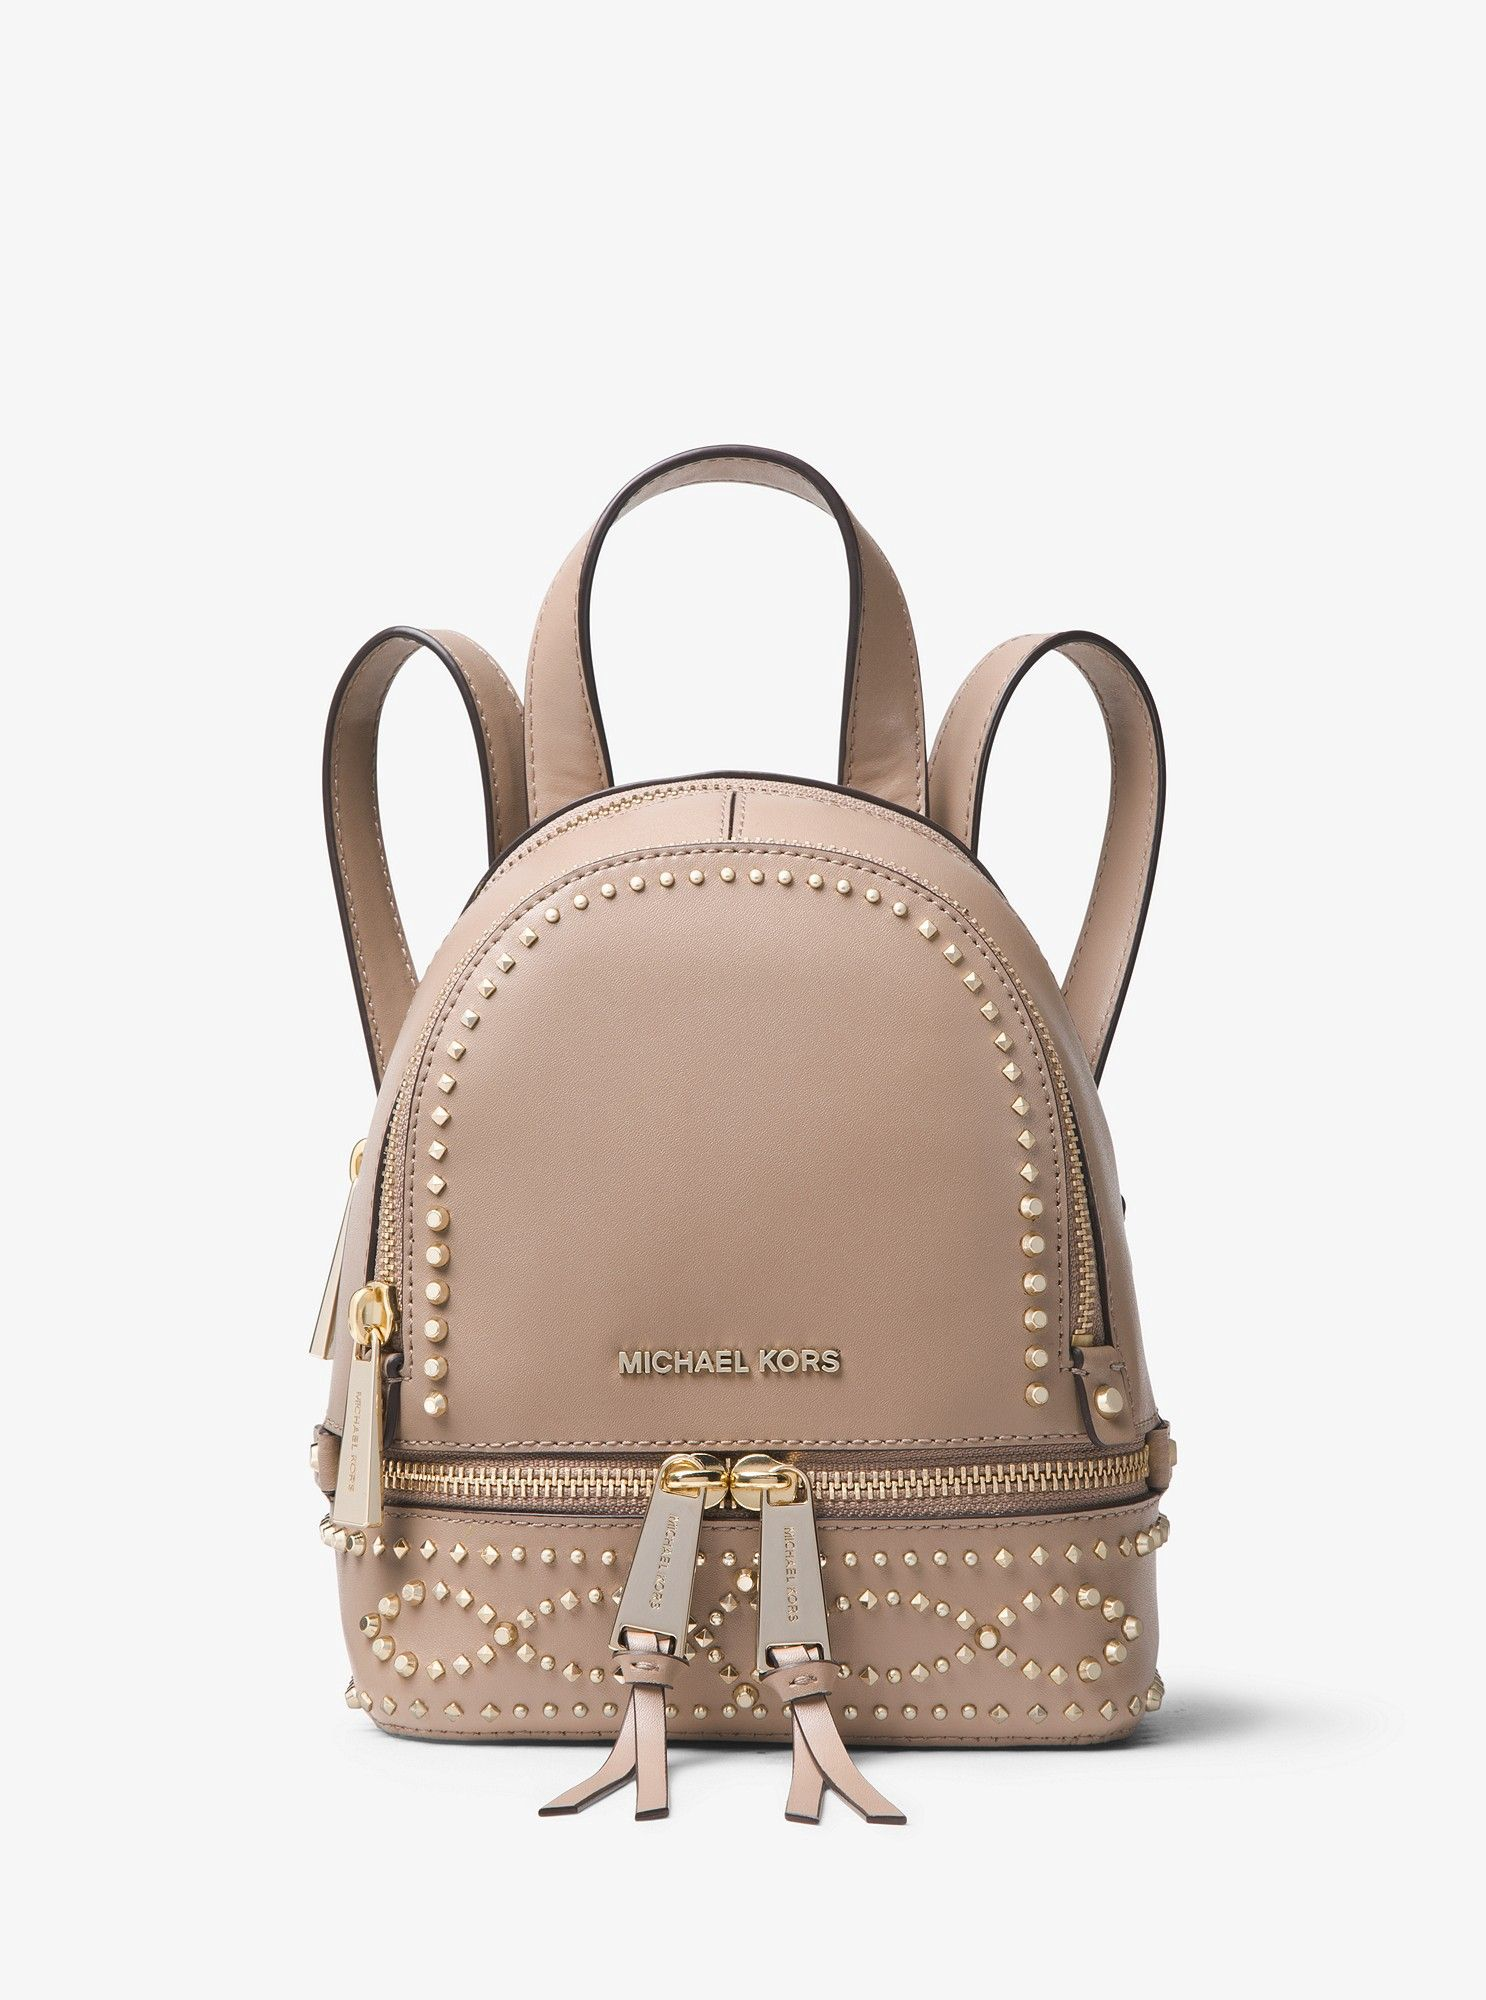 b2cb035a6c Michael Kors Rhea Mini Studded Leather Backpack - Truffle